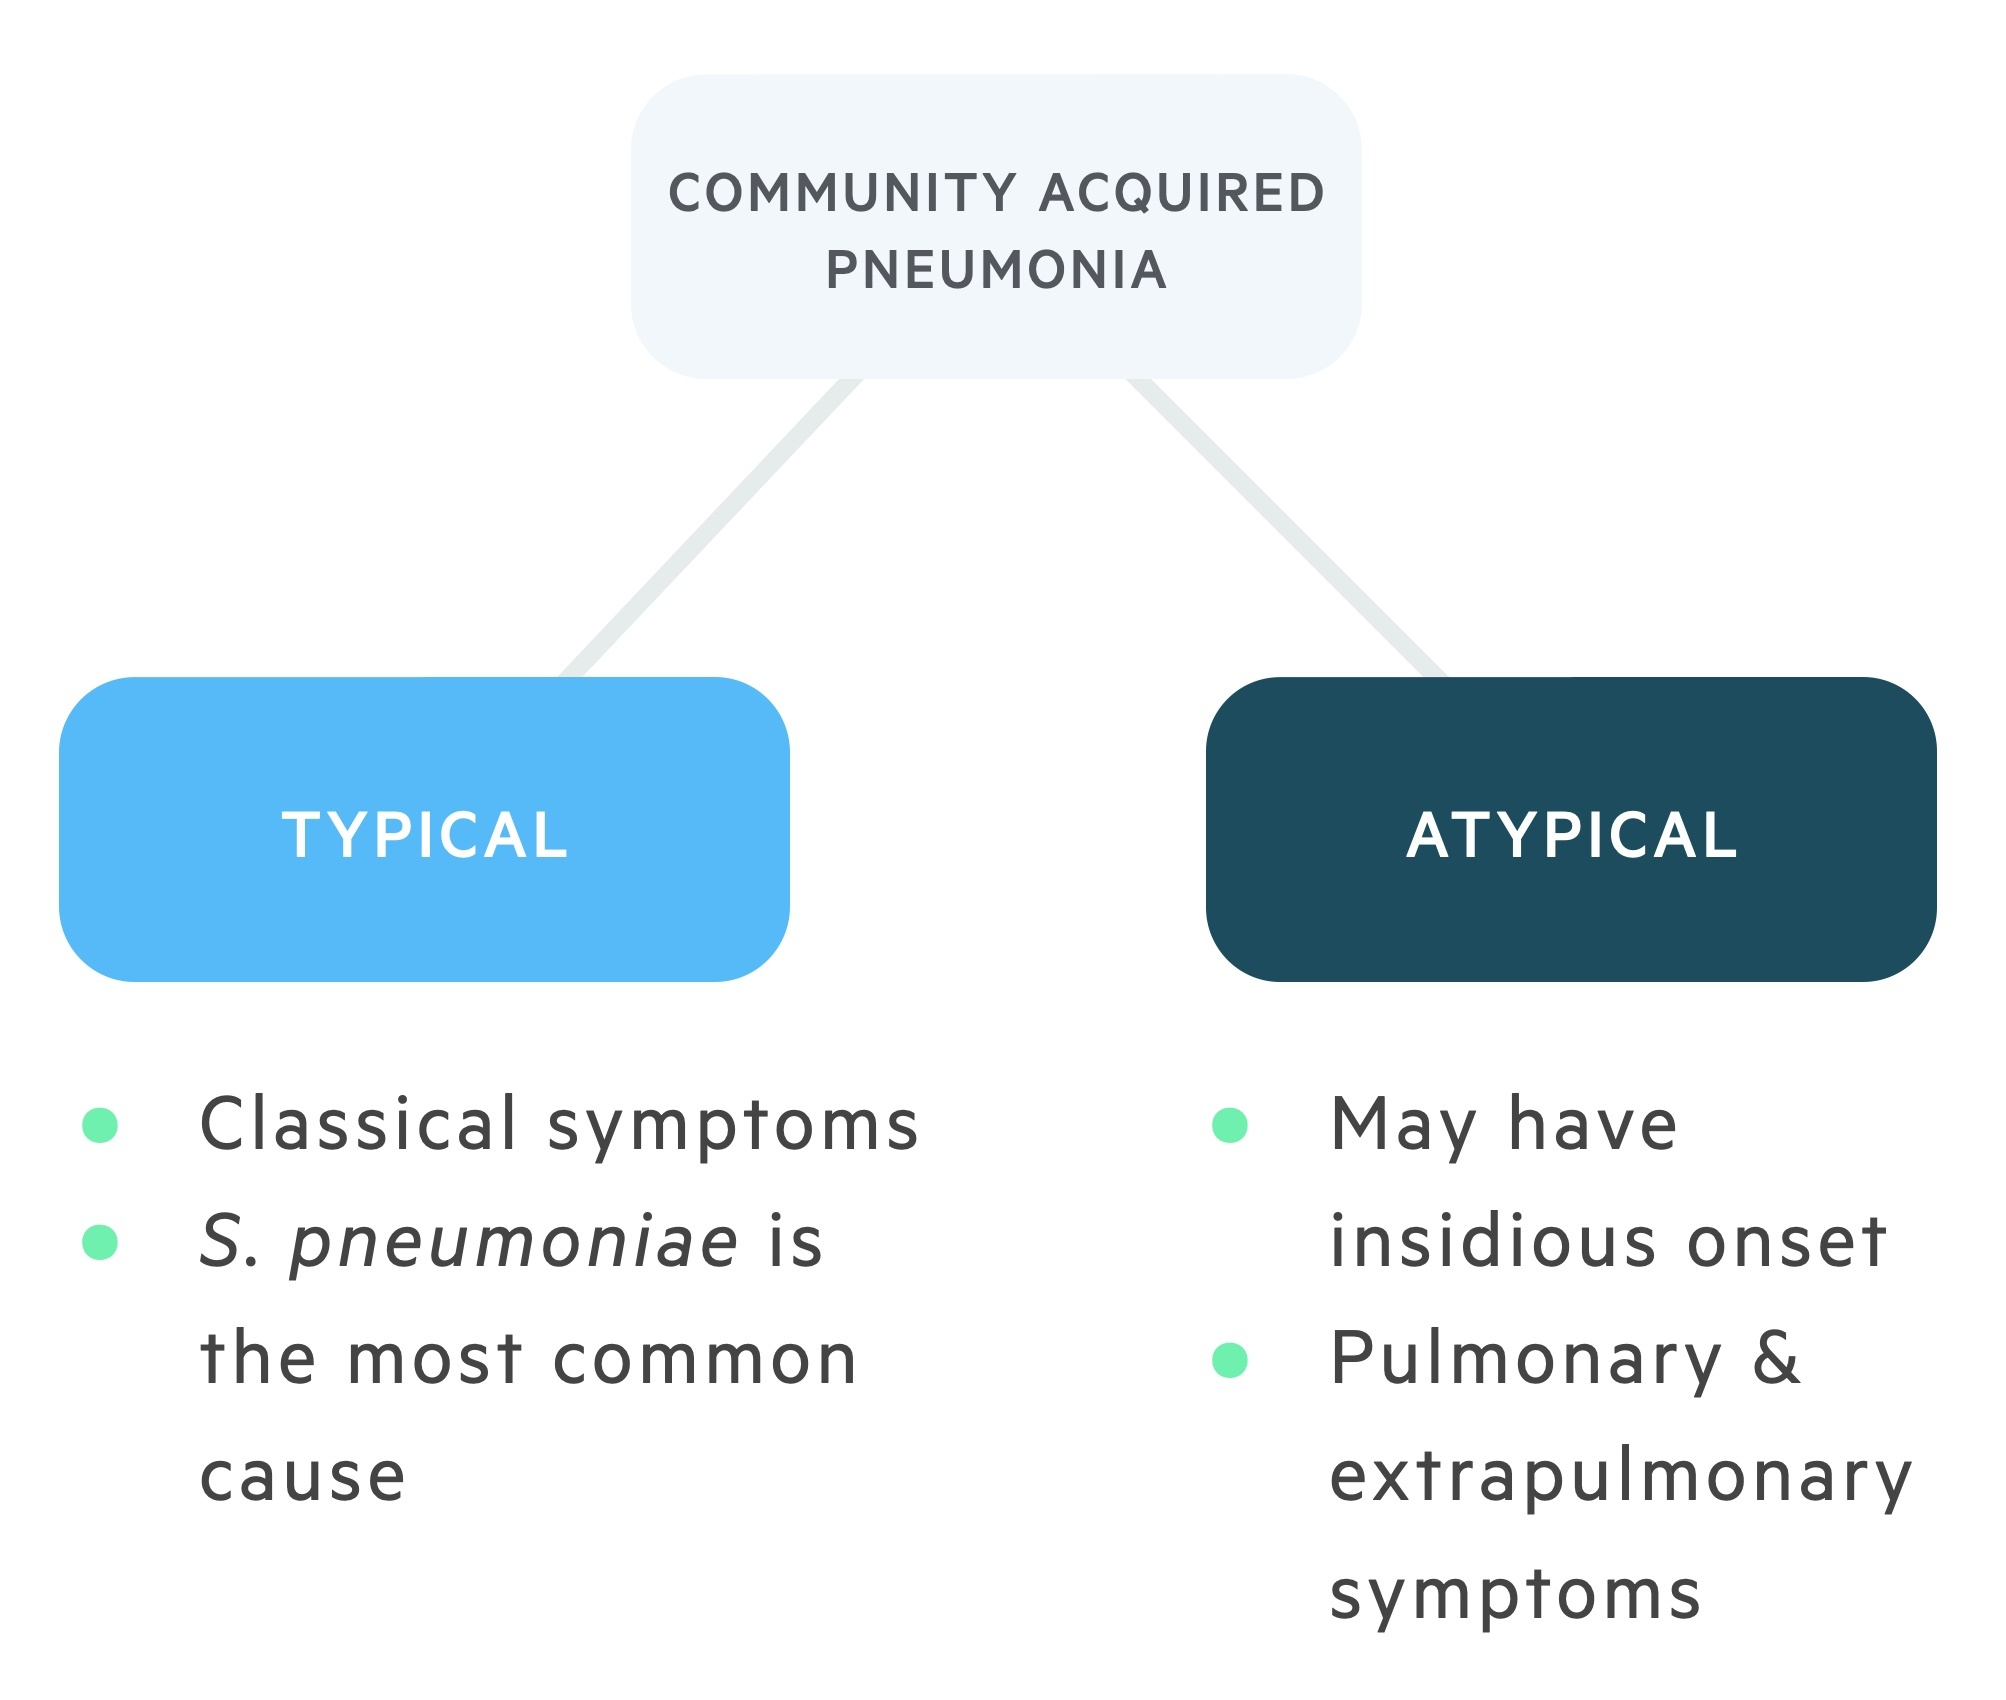 Community acquired pneumonia typical vs atypical